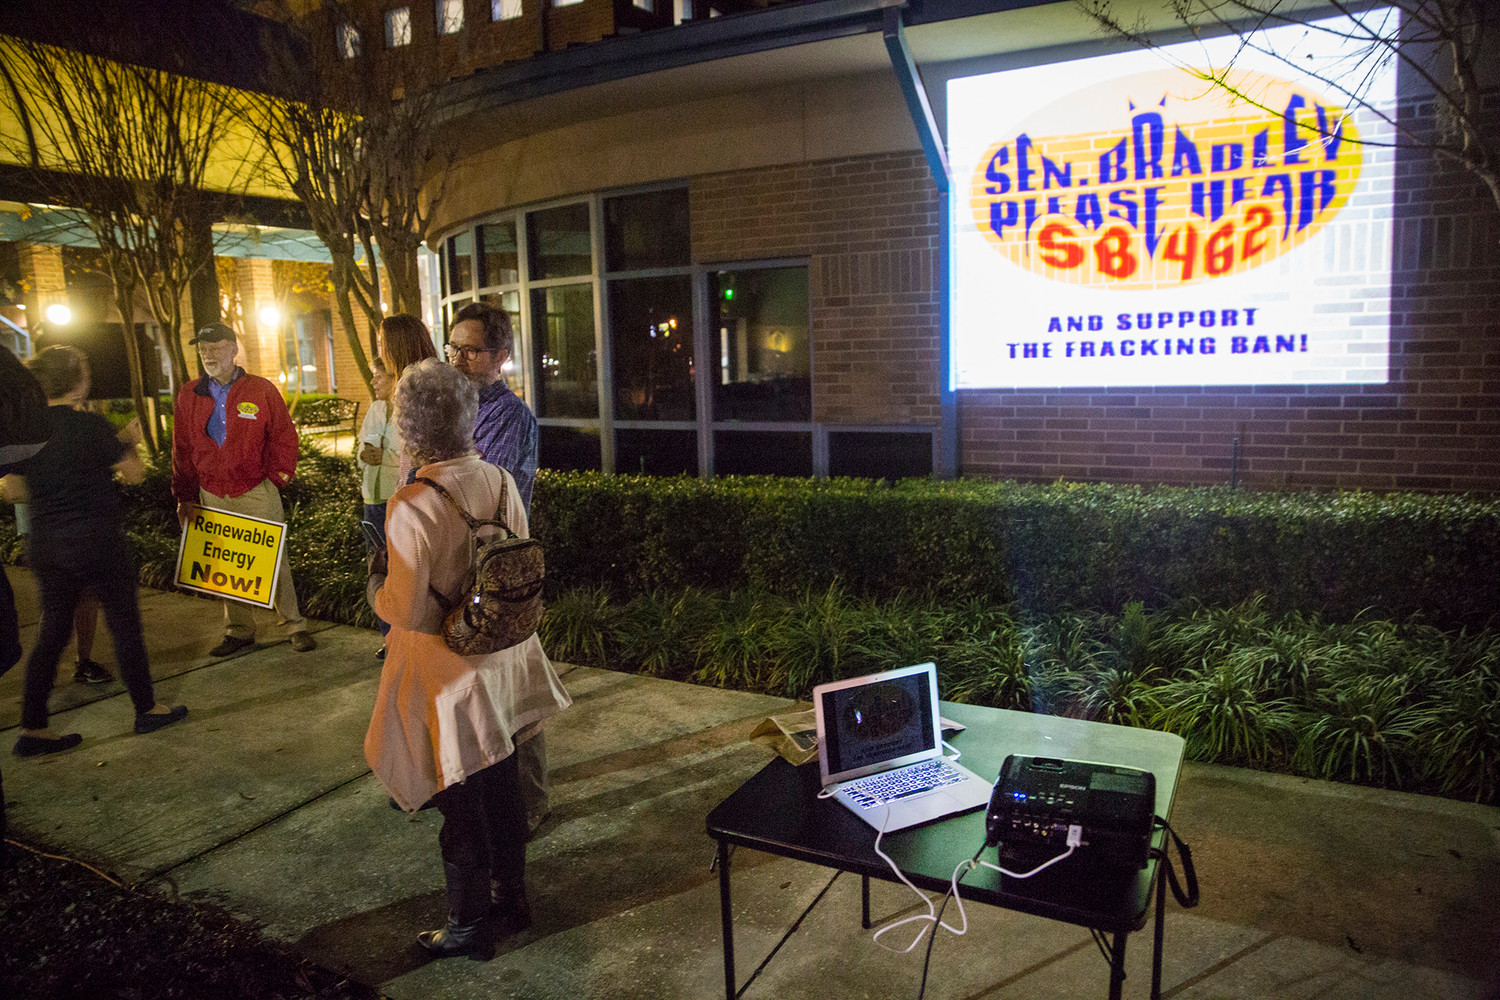 A group containing Sierra Club members and Doug Miller of reThink Energy Florida met outside Orange Park Town Hall last Thursday evening to project a Bat Signal-style graphic onto the building calling for Sen. Rob Bradley's help in passing Senate Bill 462 and keep fracking out of Florida.